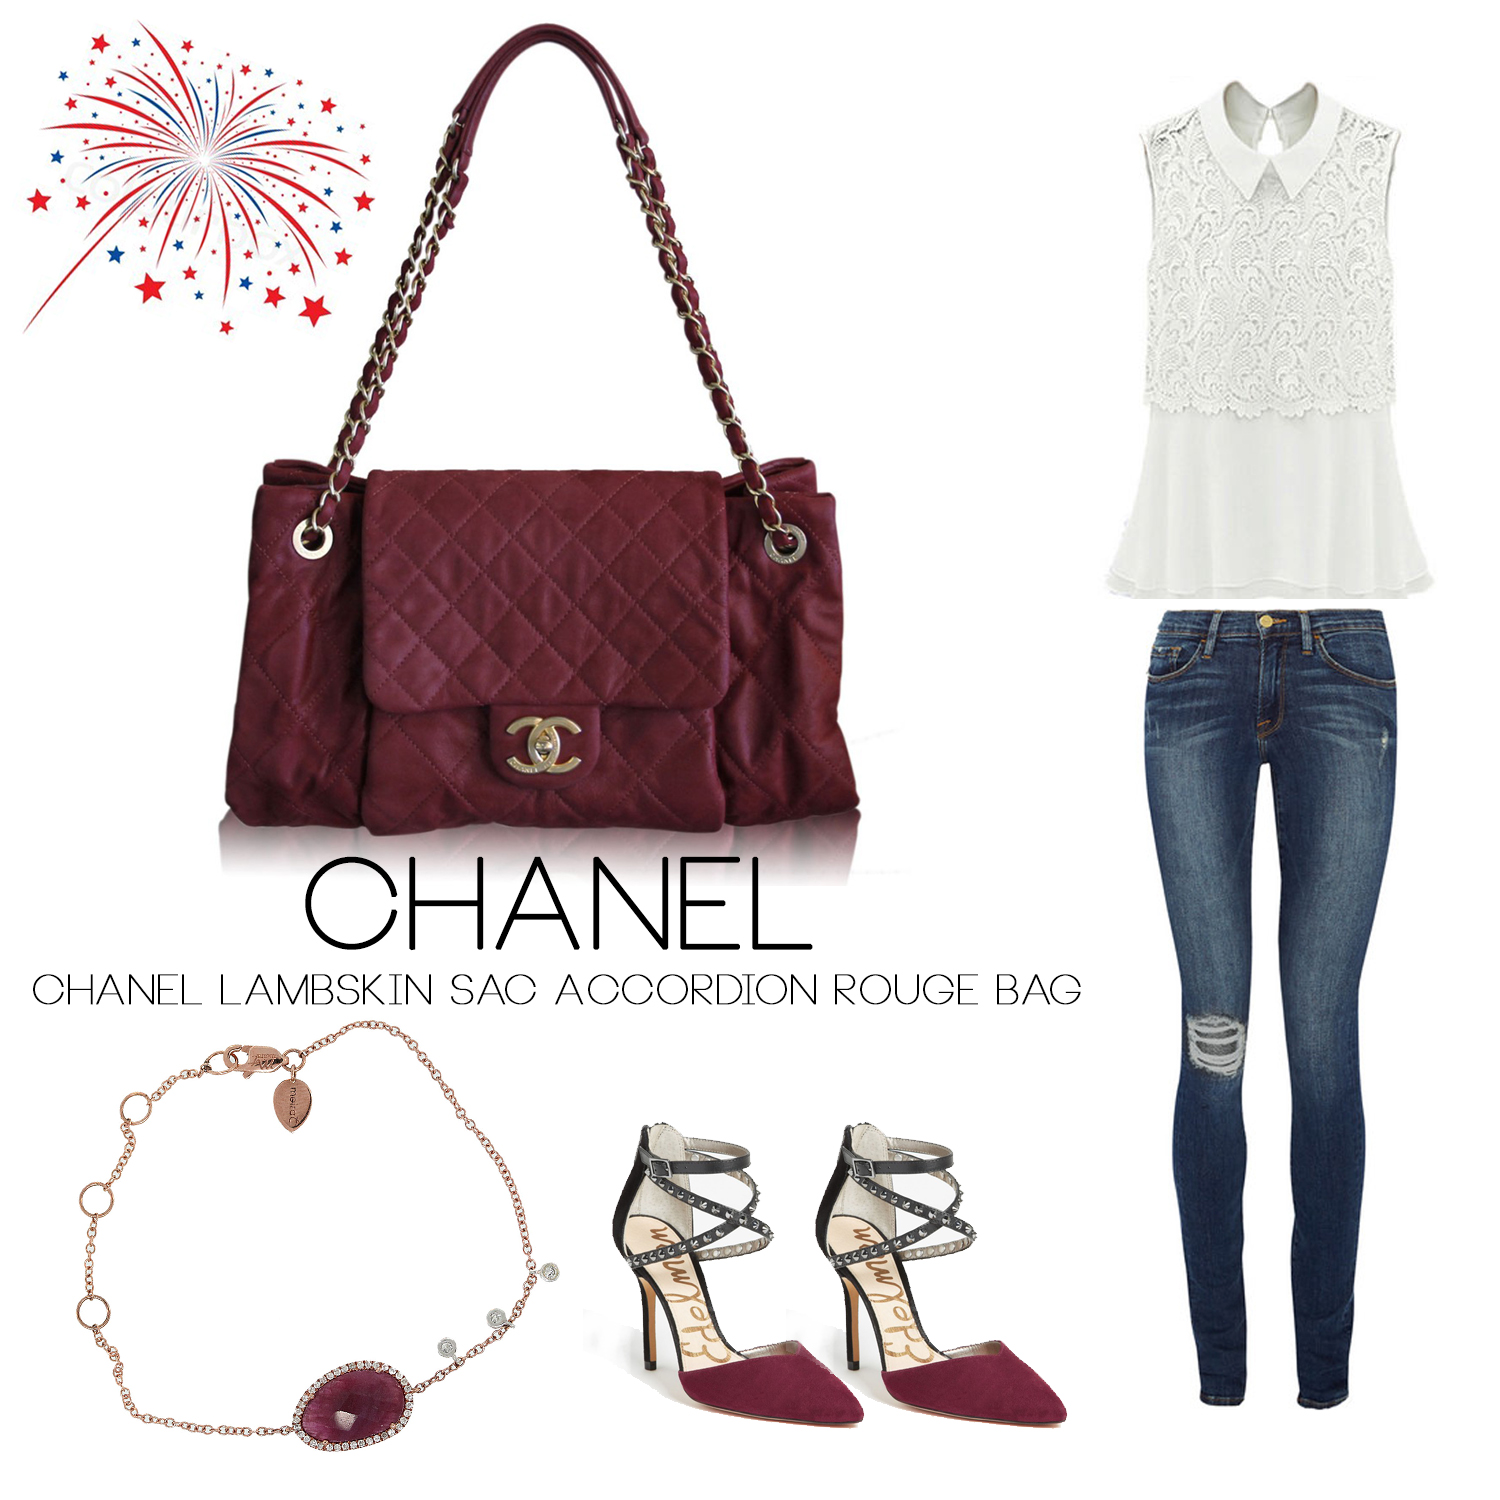 Chanel Sac Accordion Rouge Flap Bag Boca Raton